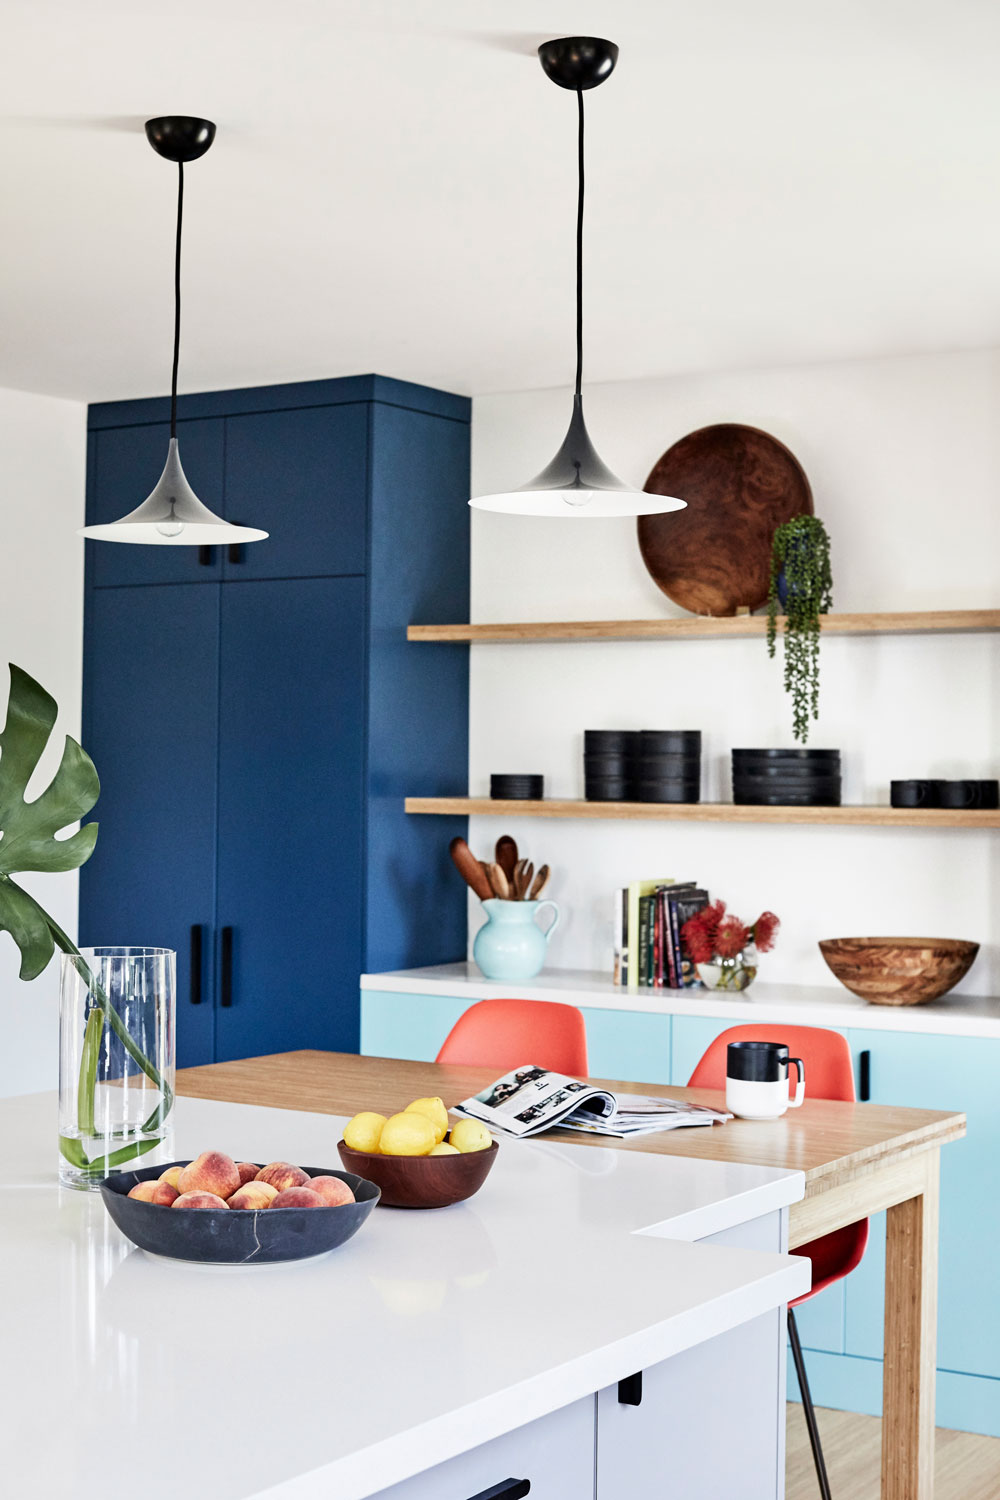 Adding a counter-height bamboo kitchen table to the end of the island makes dinner for the kids so easy. And, those pendant lights makes it feel cozy.